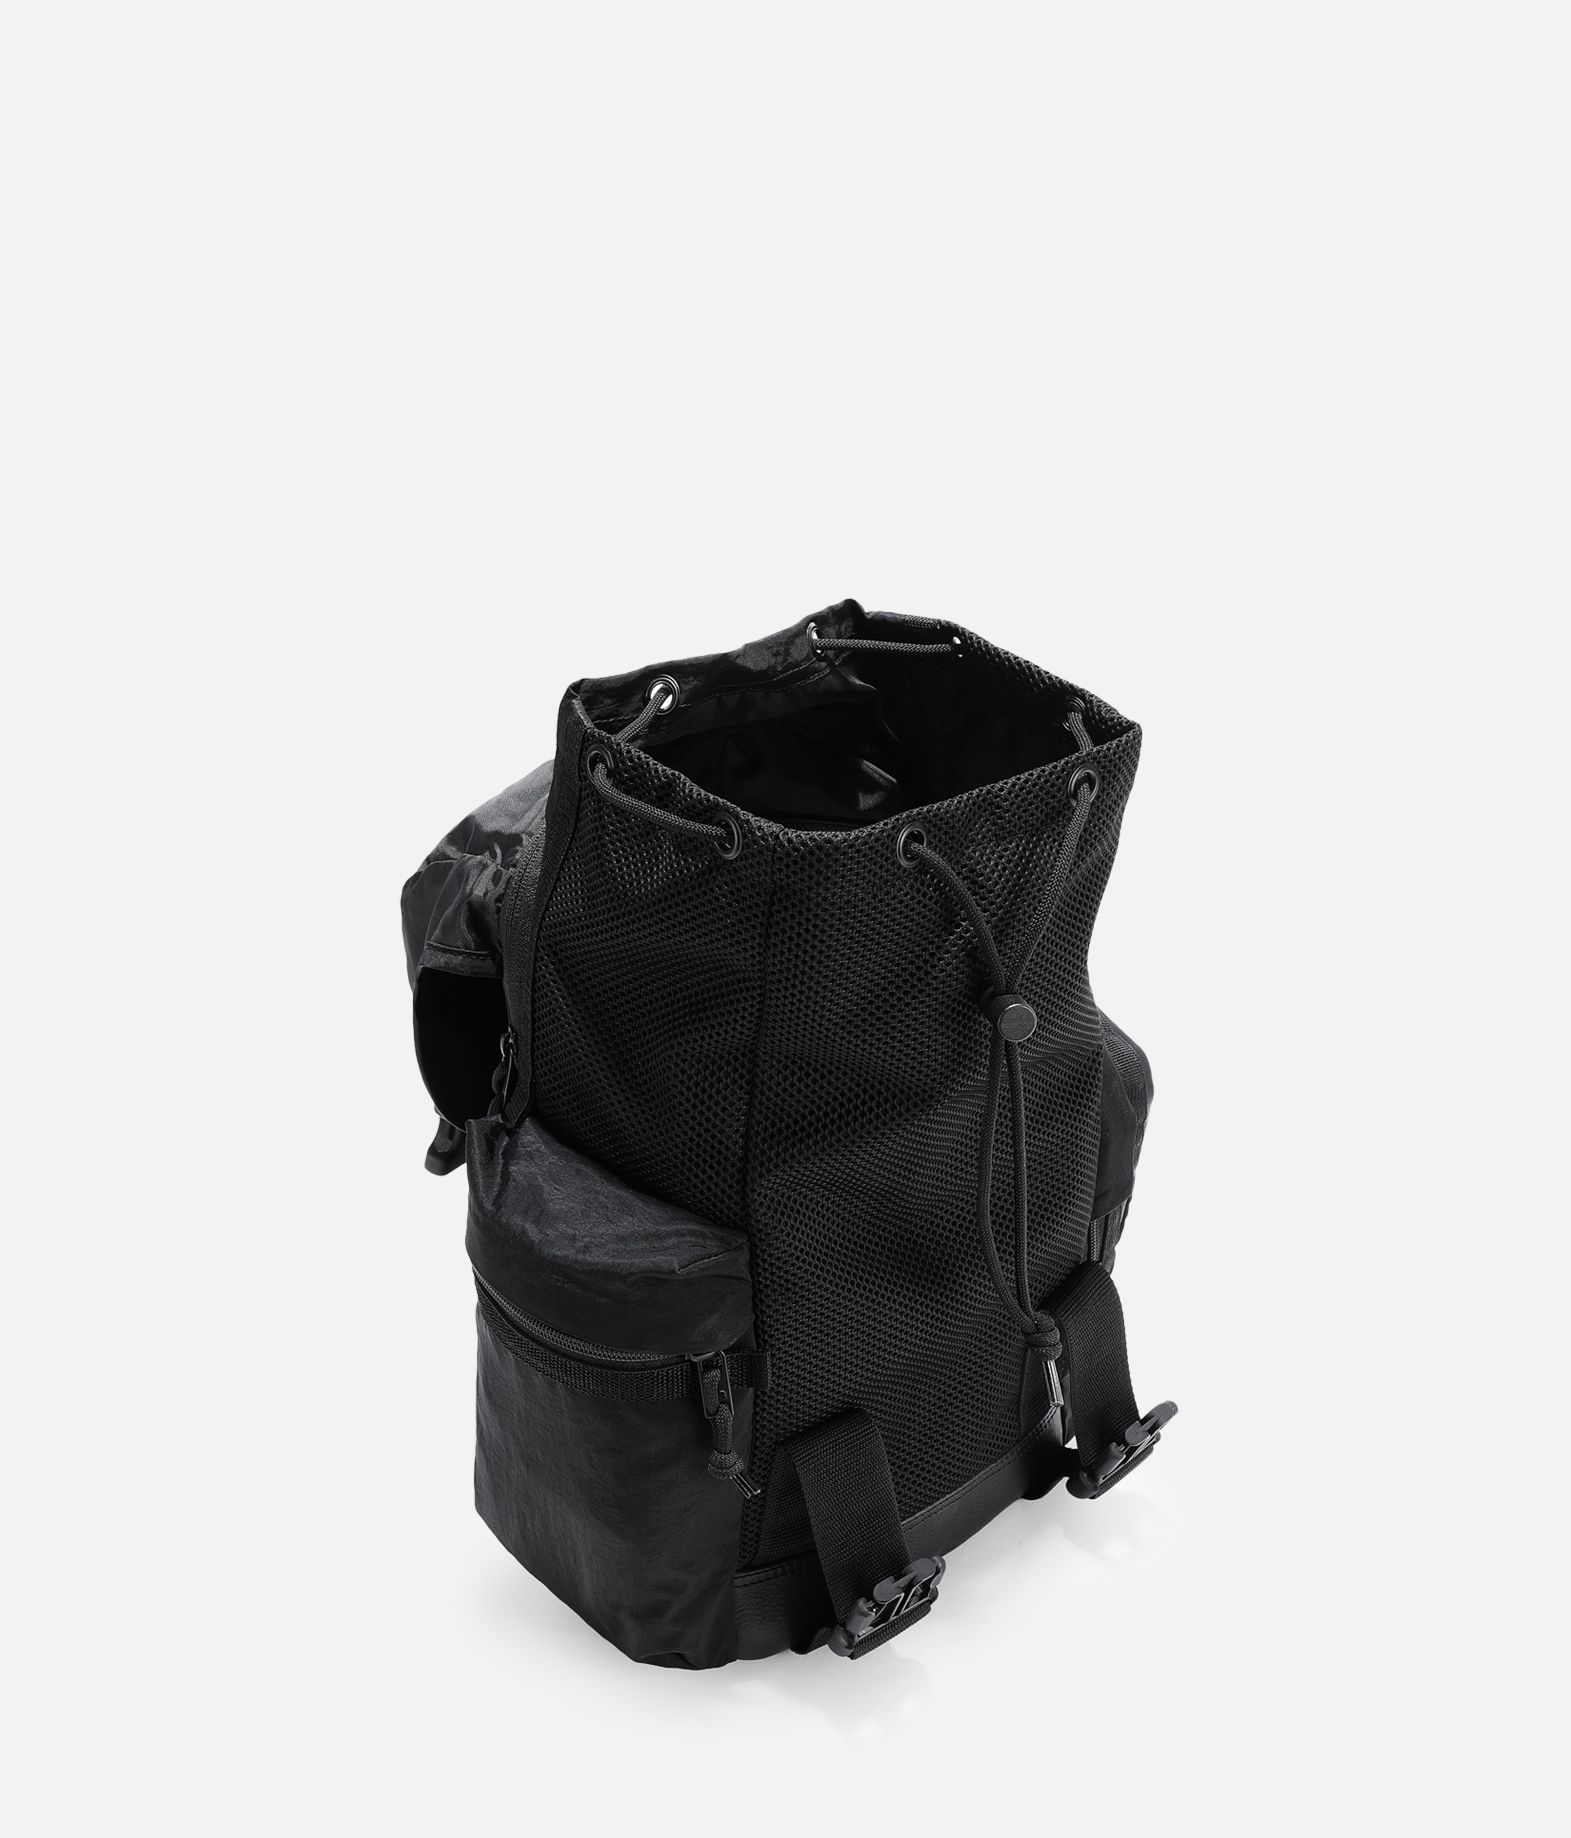 Y-3 Y-3 XS Mobility Bag リュックサック E e